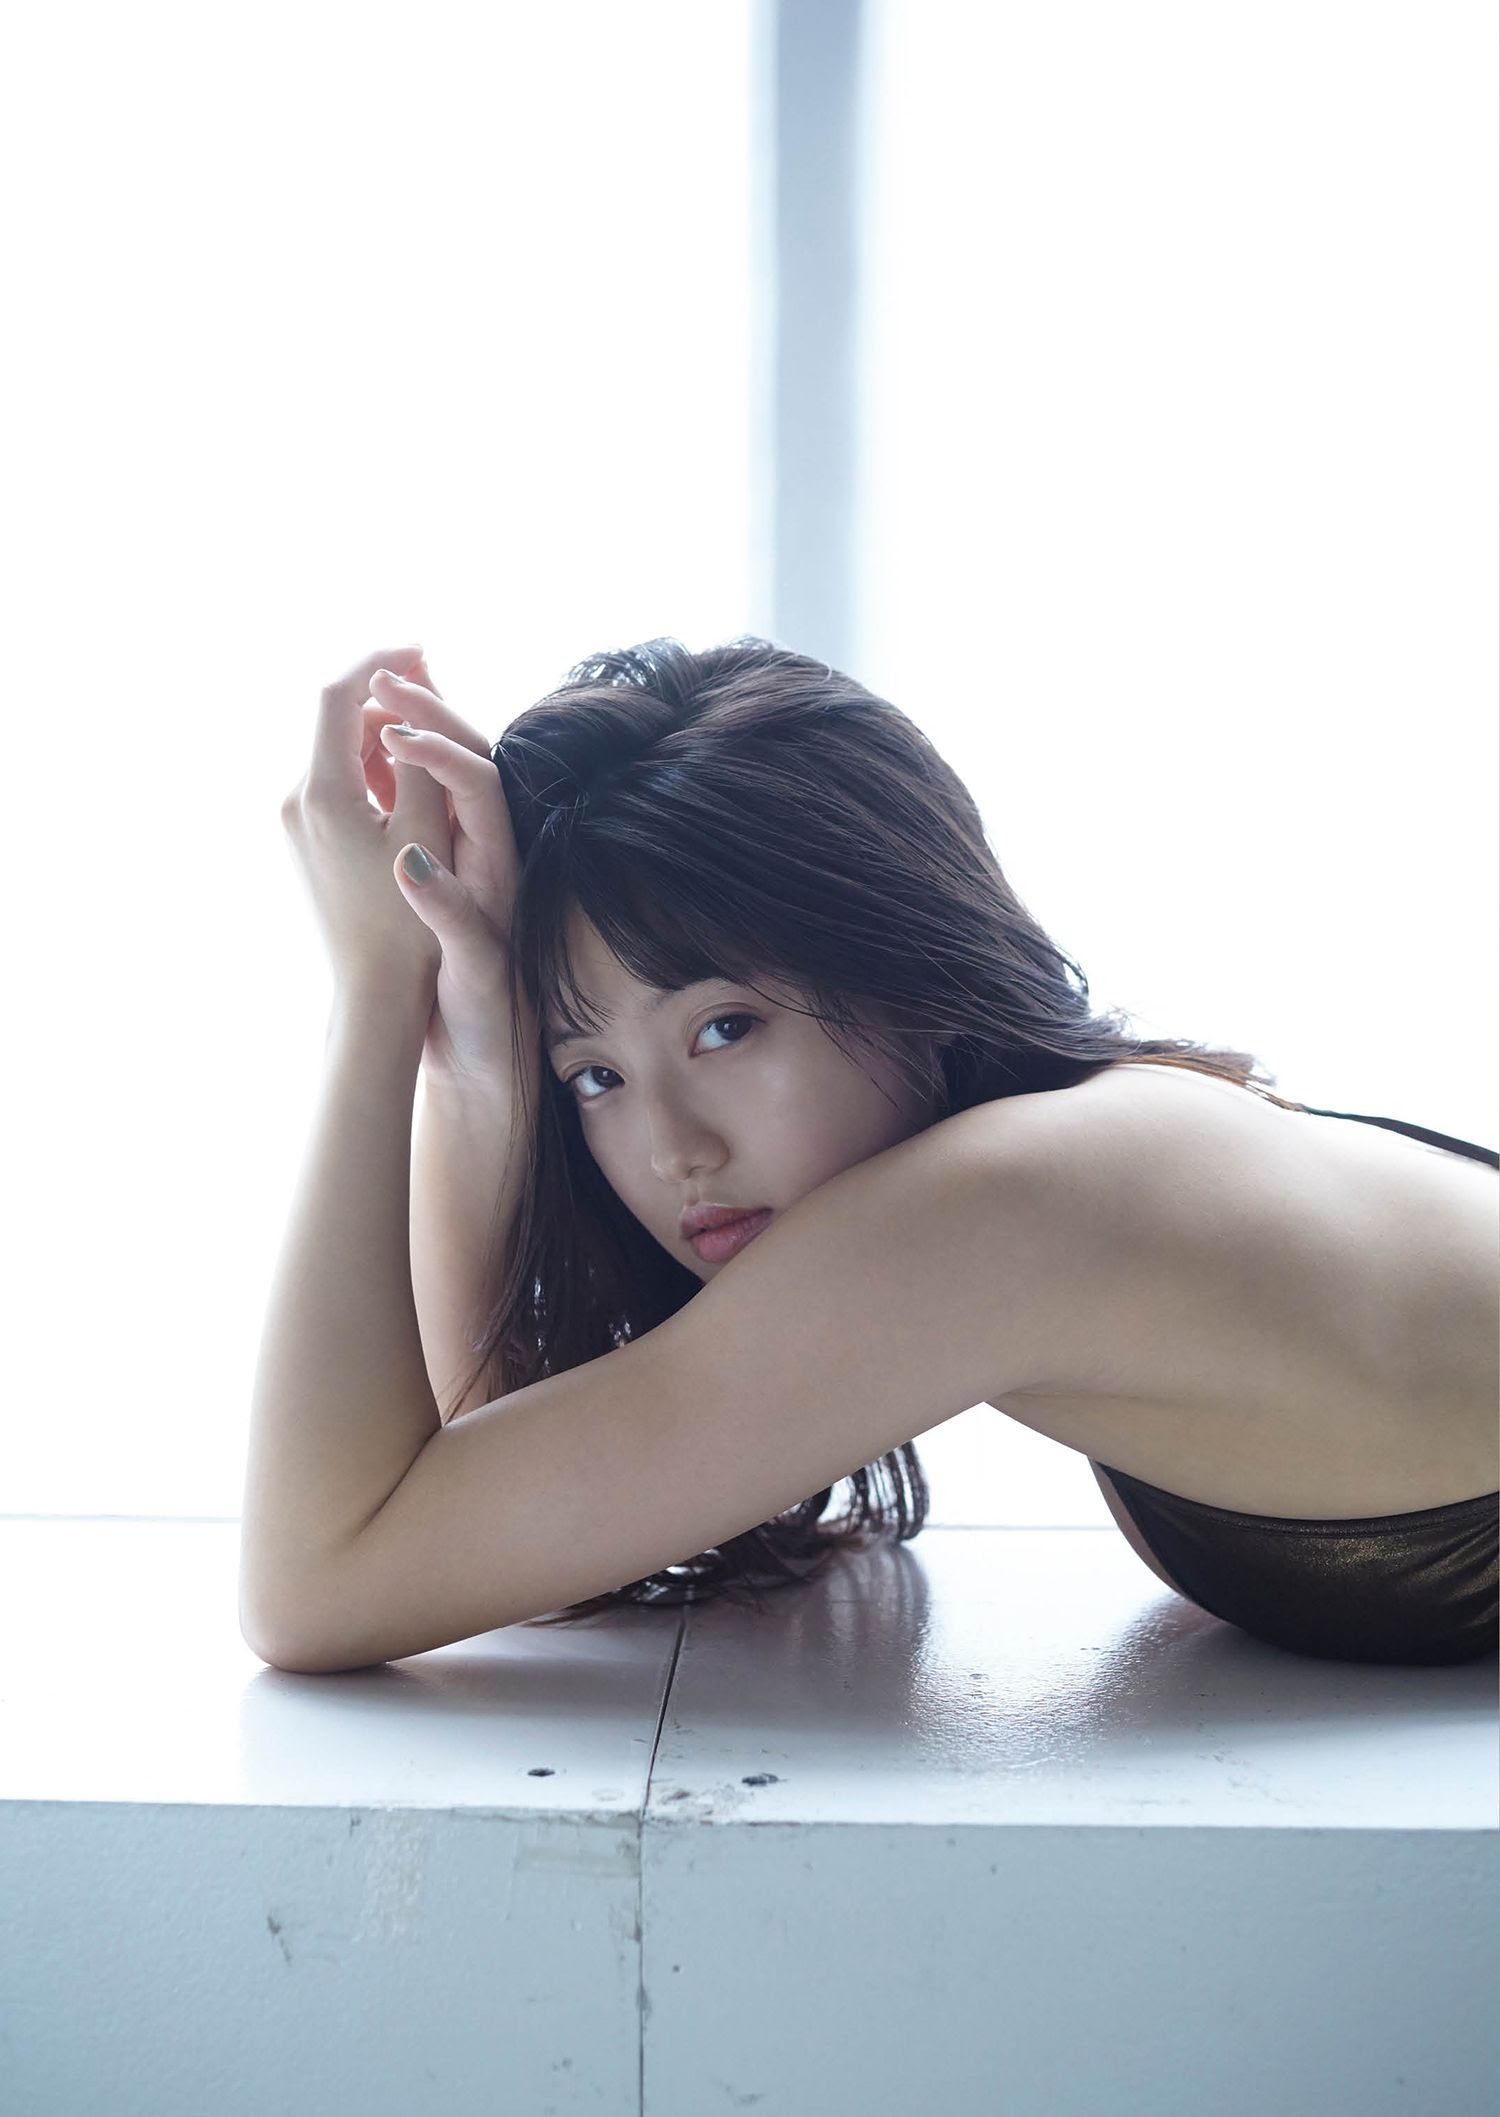 Without a doubt the youngest actress Mio Imada132